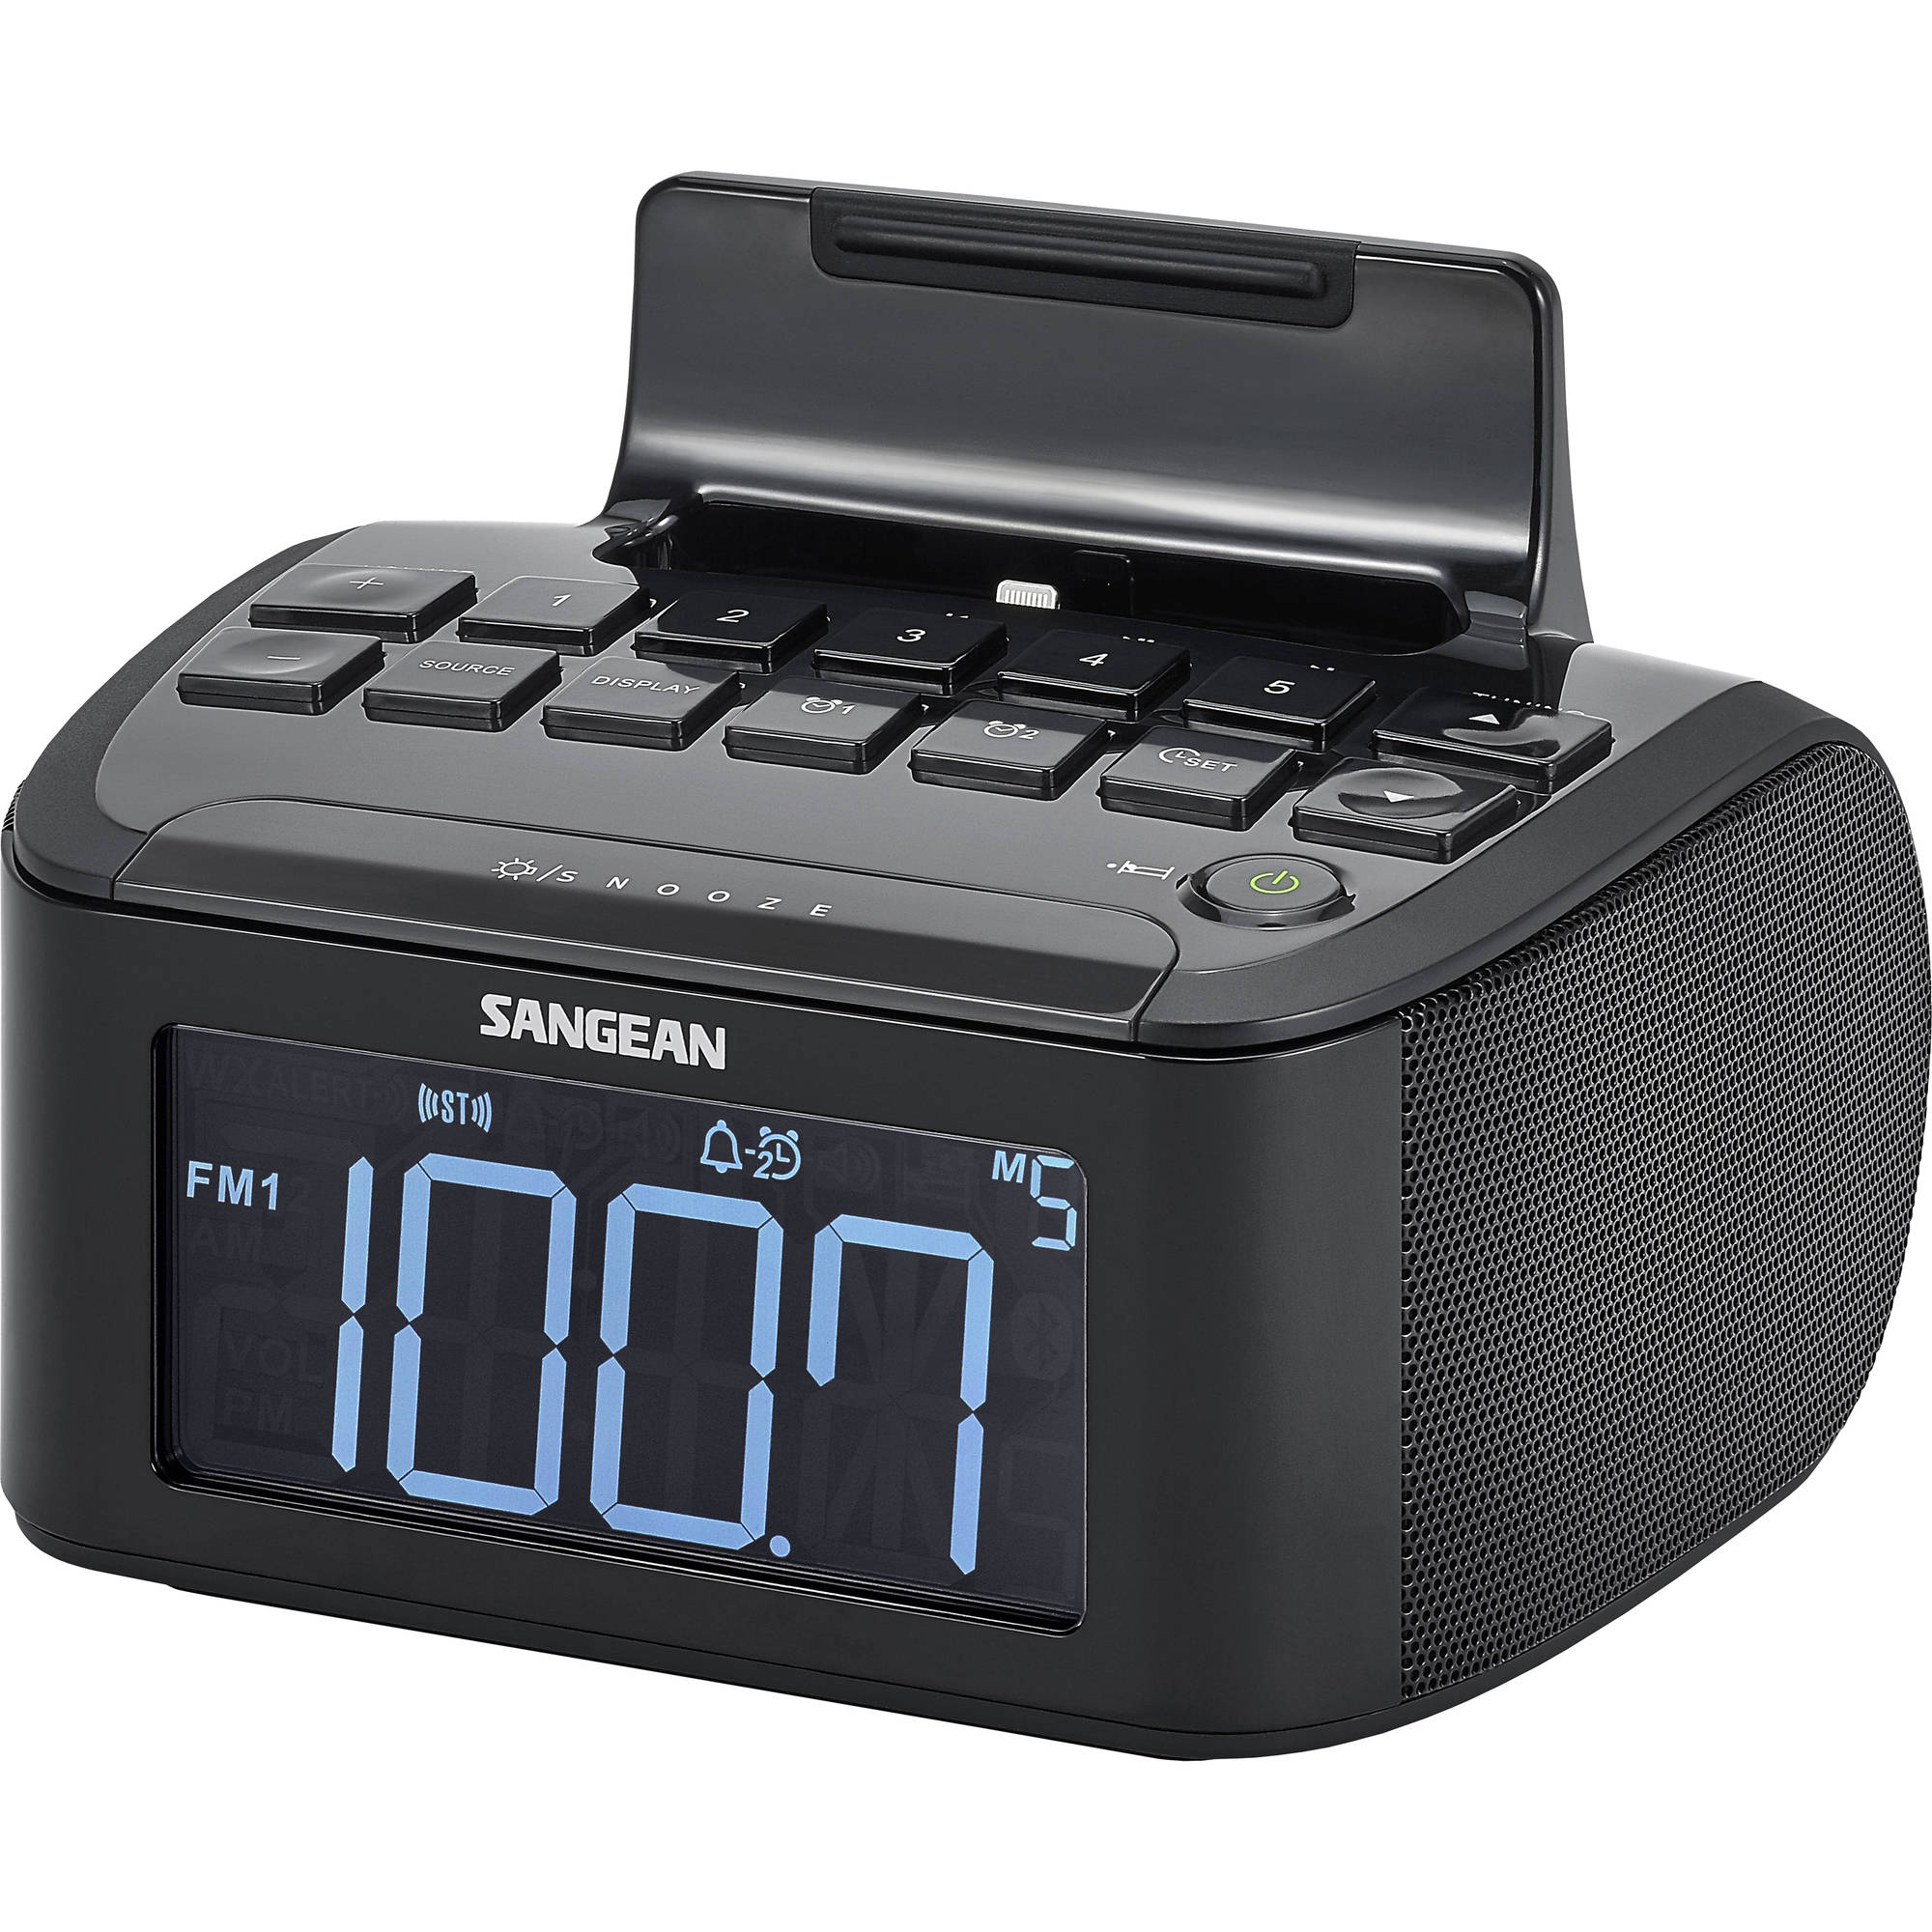 Sangean RCR-28 AM/FM Stereo/AUX-In Digital Tuning Clock Radio with Lighting Connector Dock for Apple iPhone 5/5S and 6/6 Plus, Black